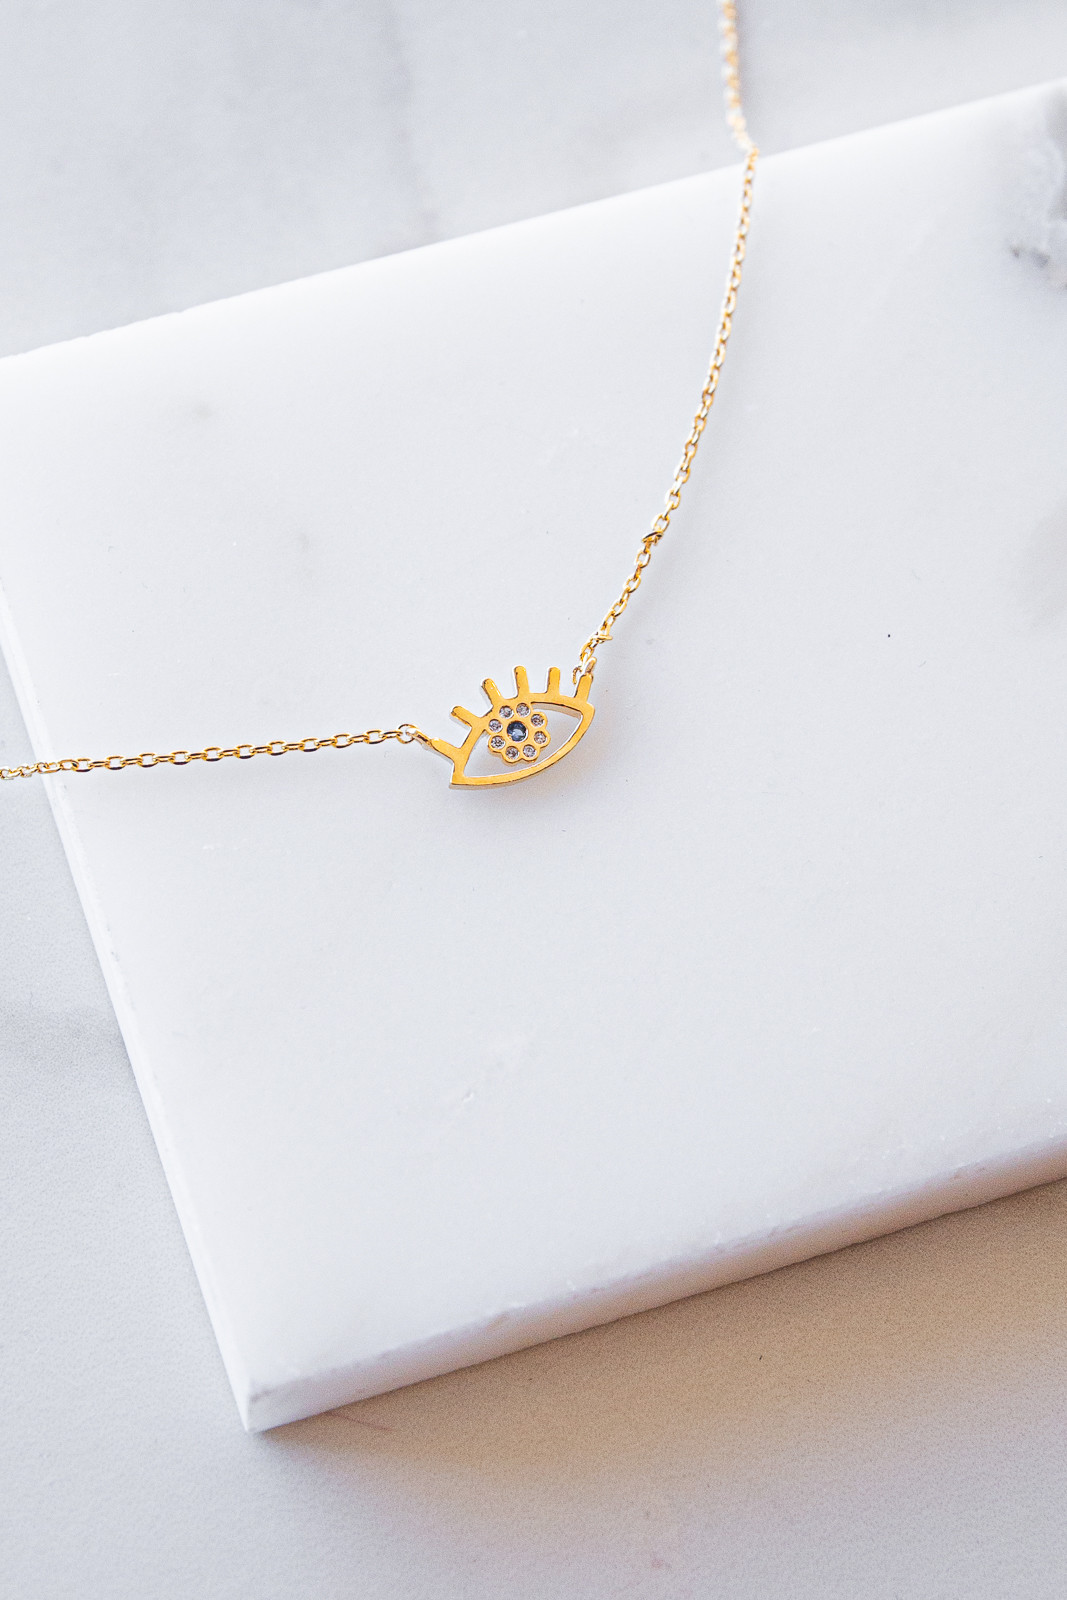 Gold Dainty Chain Necklace with Eye Charm